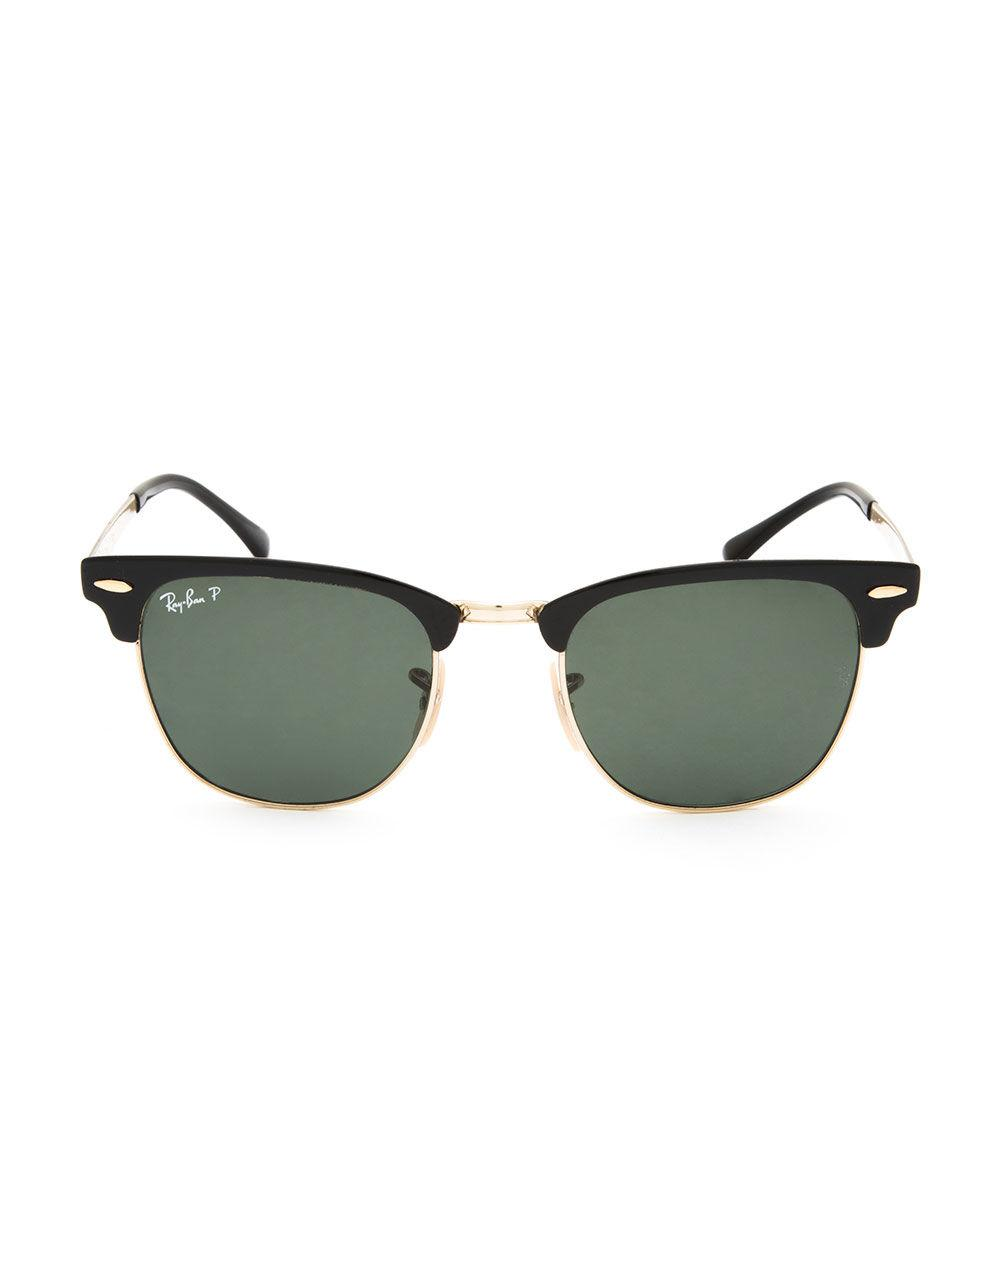 0a2b628885e4e Lyst - Ray-Ban Clubmaster Metal Black   Green Classic Polarized Sunglasses  in Green for Men